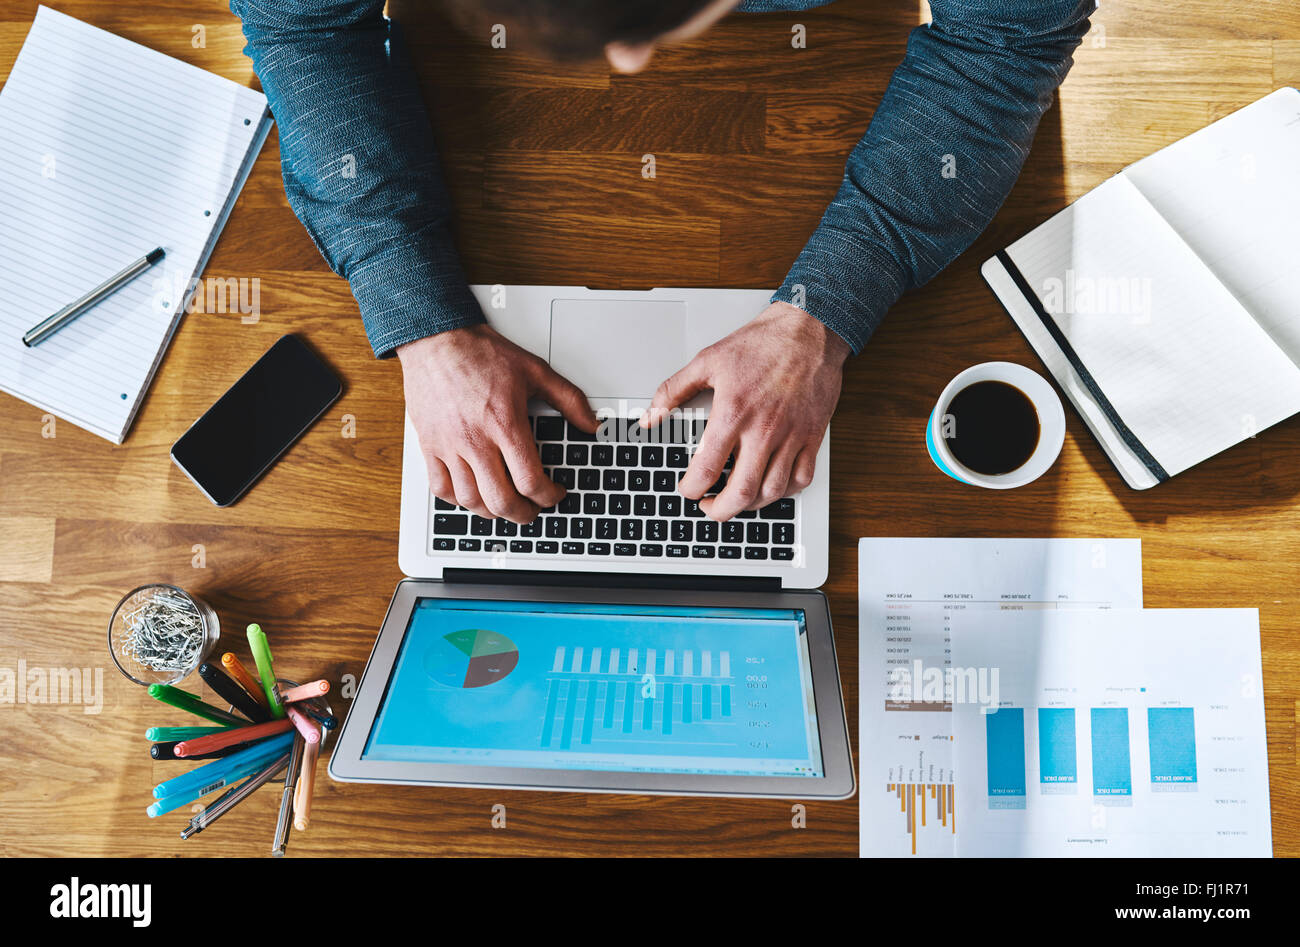 Top view working at desk with laptop and documents, business concept - Stock Image